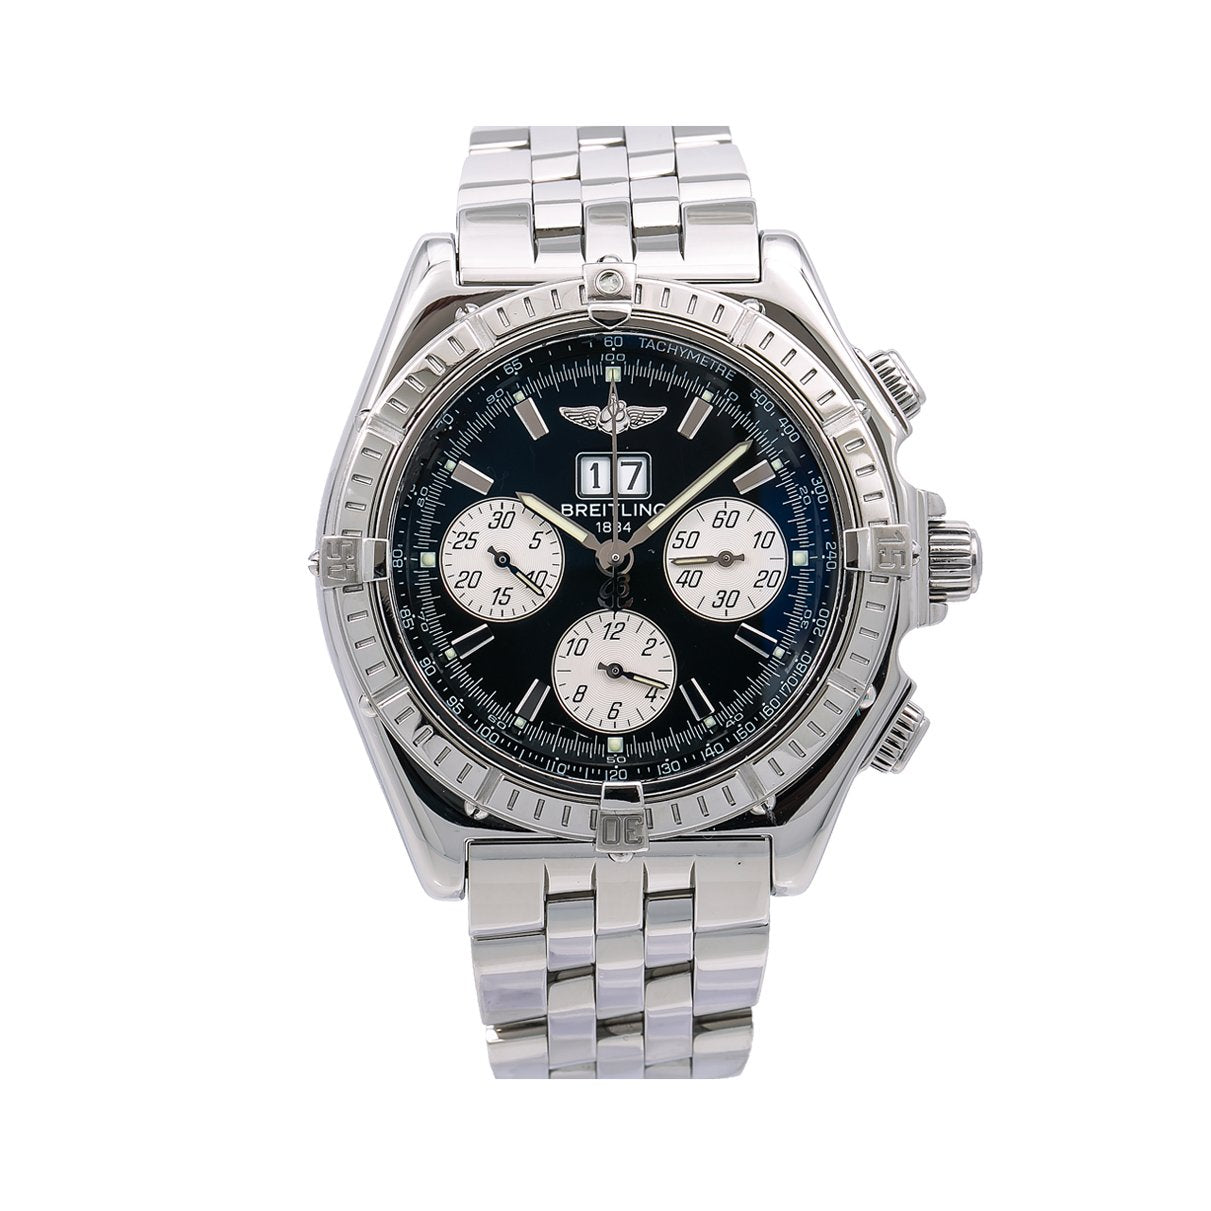 Breitling Crosswind Special A44355 44MM Black Dial With Stainless Steel Bracelet